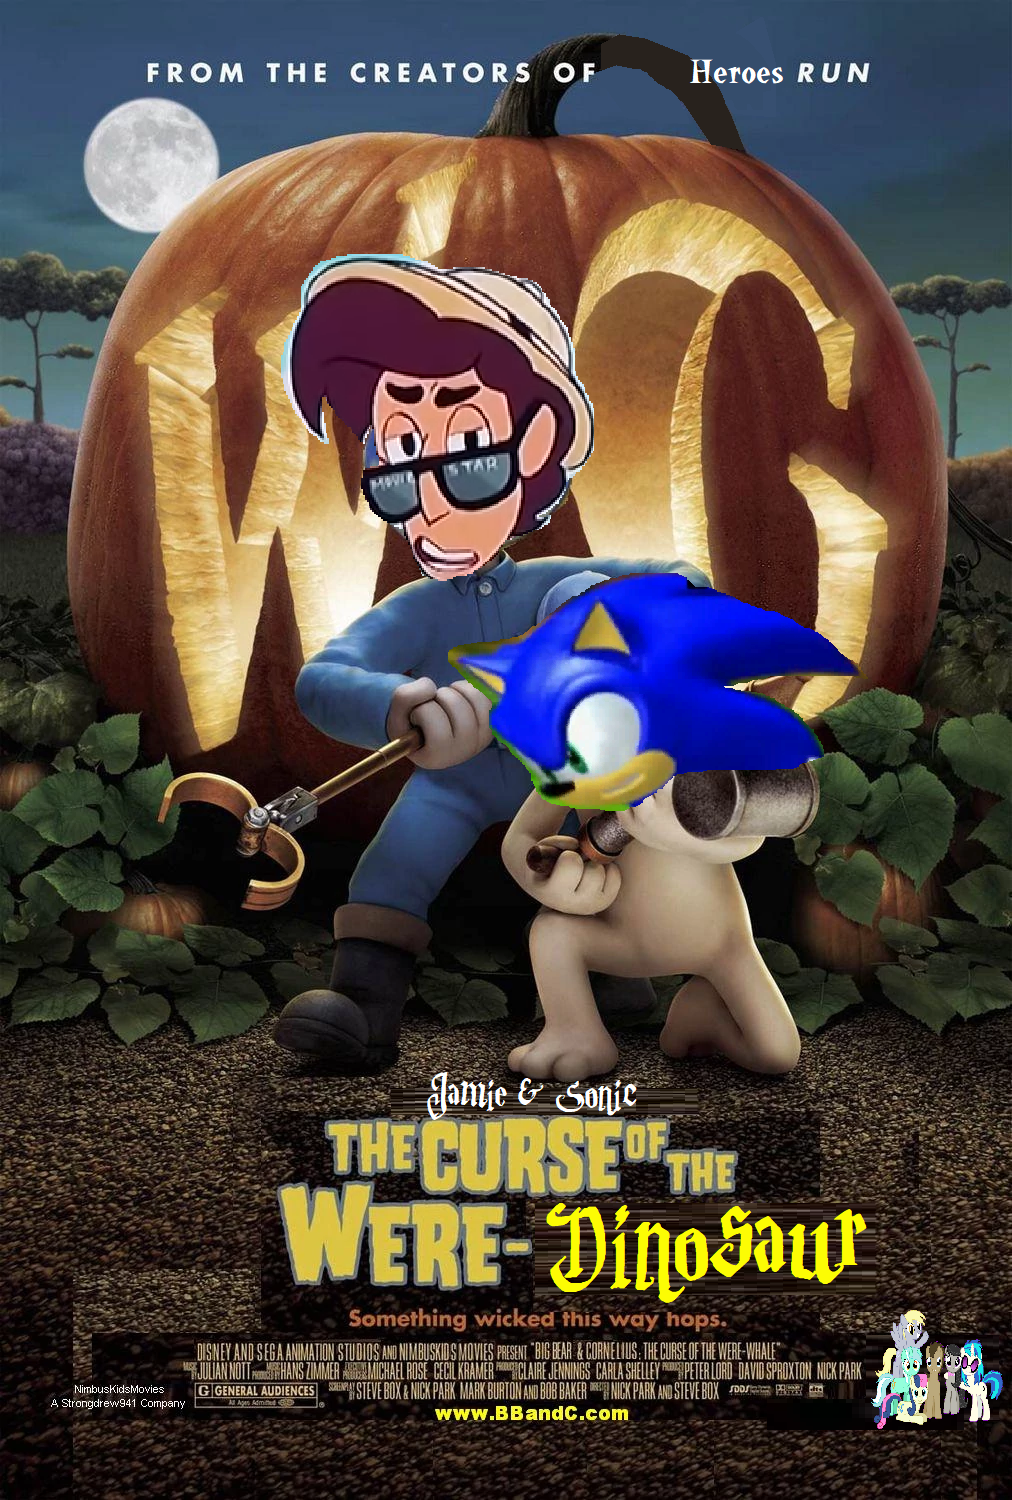 Jamie & Sonic: The Curse of the Were-Alleycat